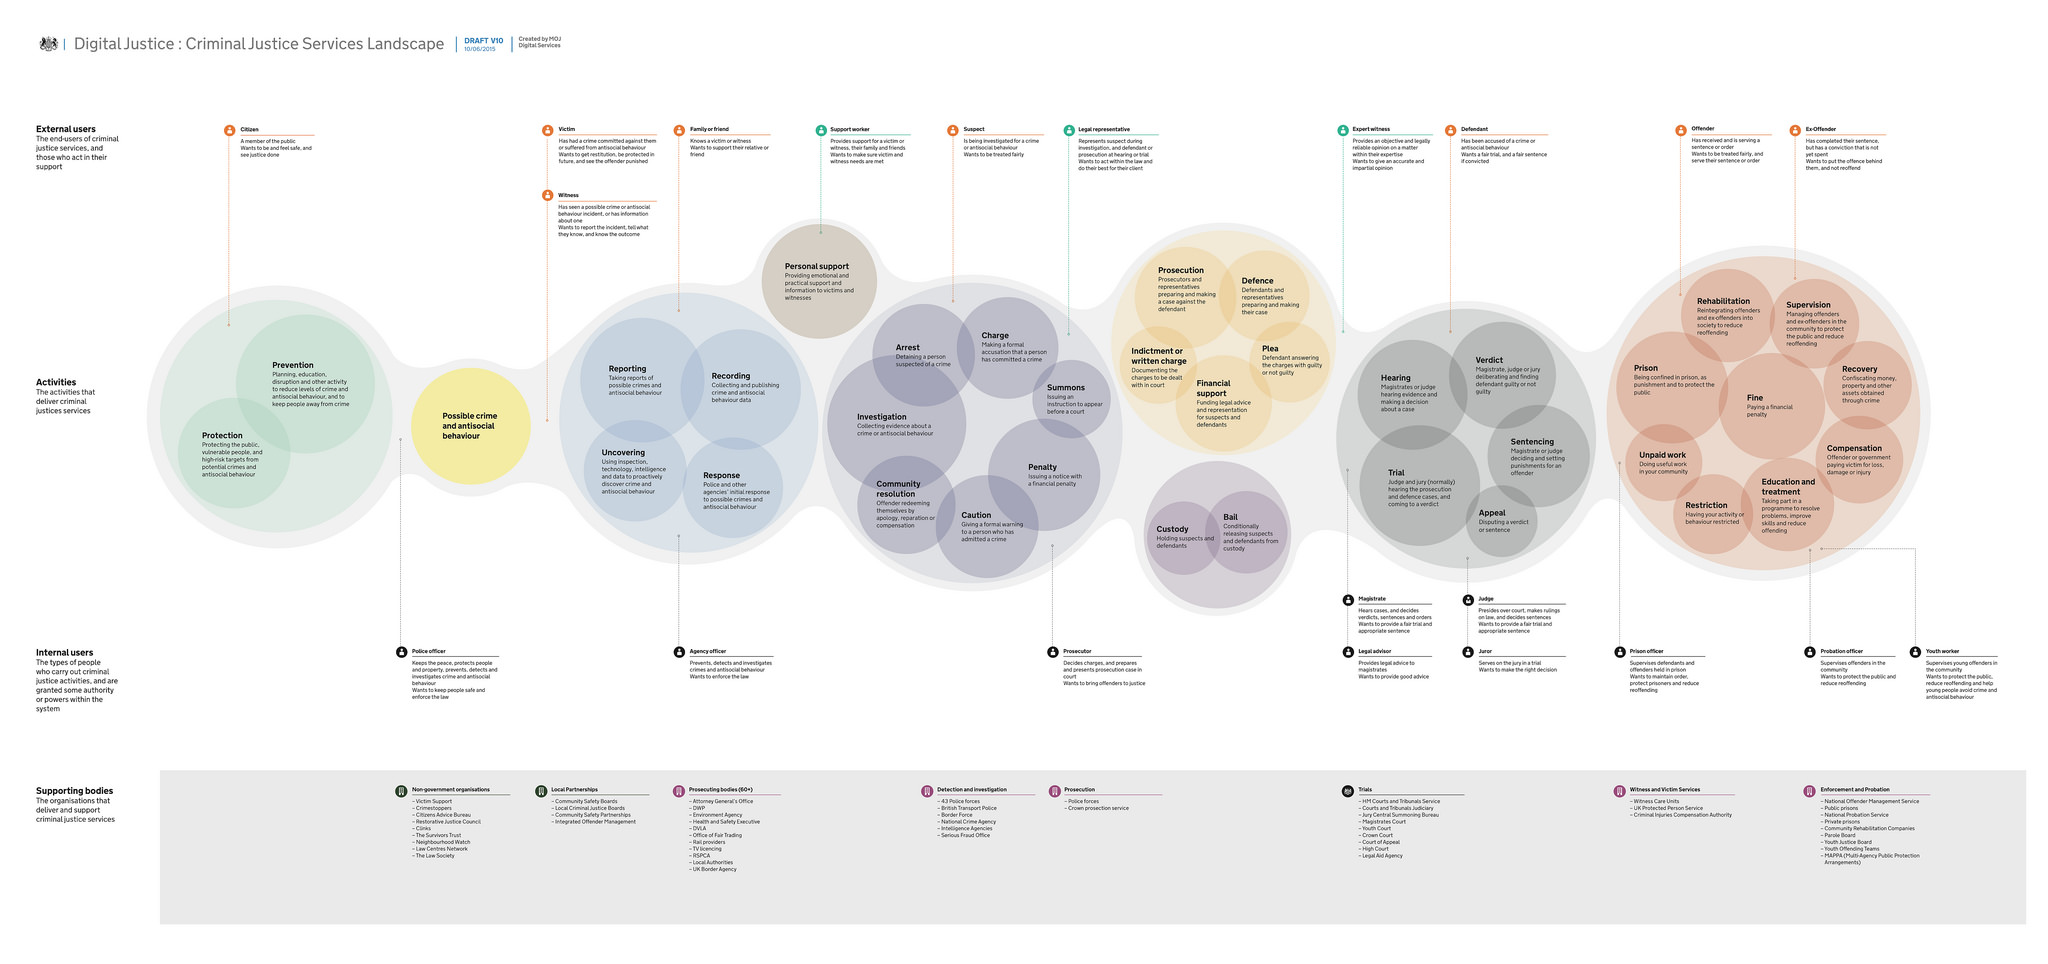 opening up data in the criminal justice system   moj digital    criminal justice services landscape  a diagram showing the relationship between different parts of the criminal